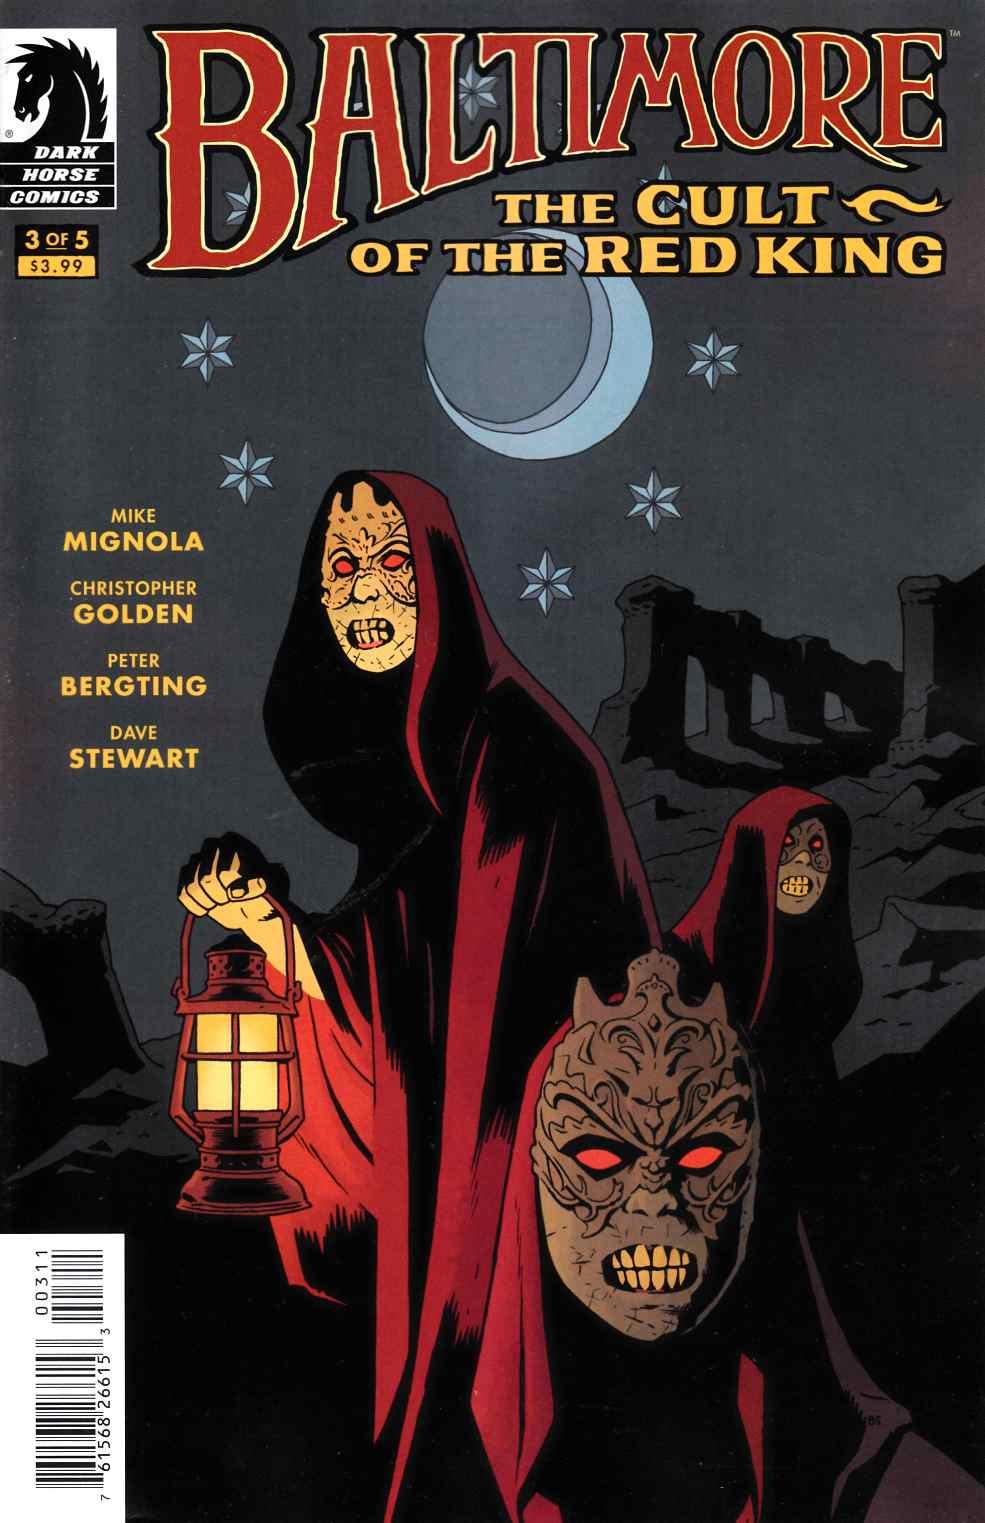 Baltimore Cult of the Red King #3 [Dark Horse Comic]